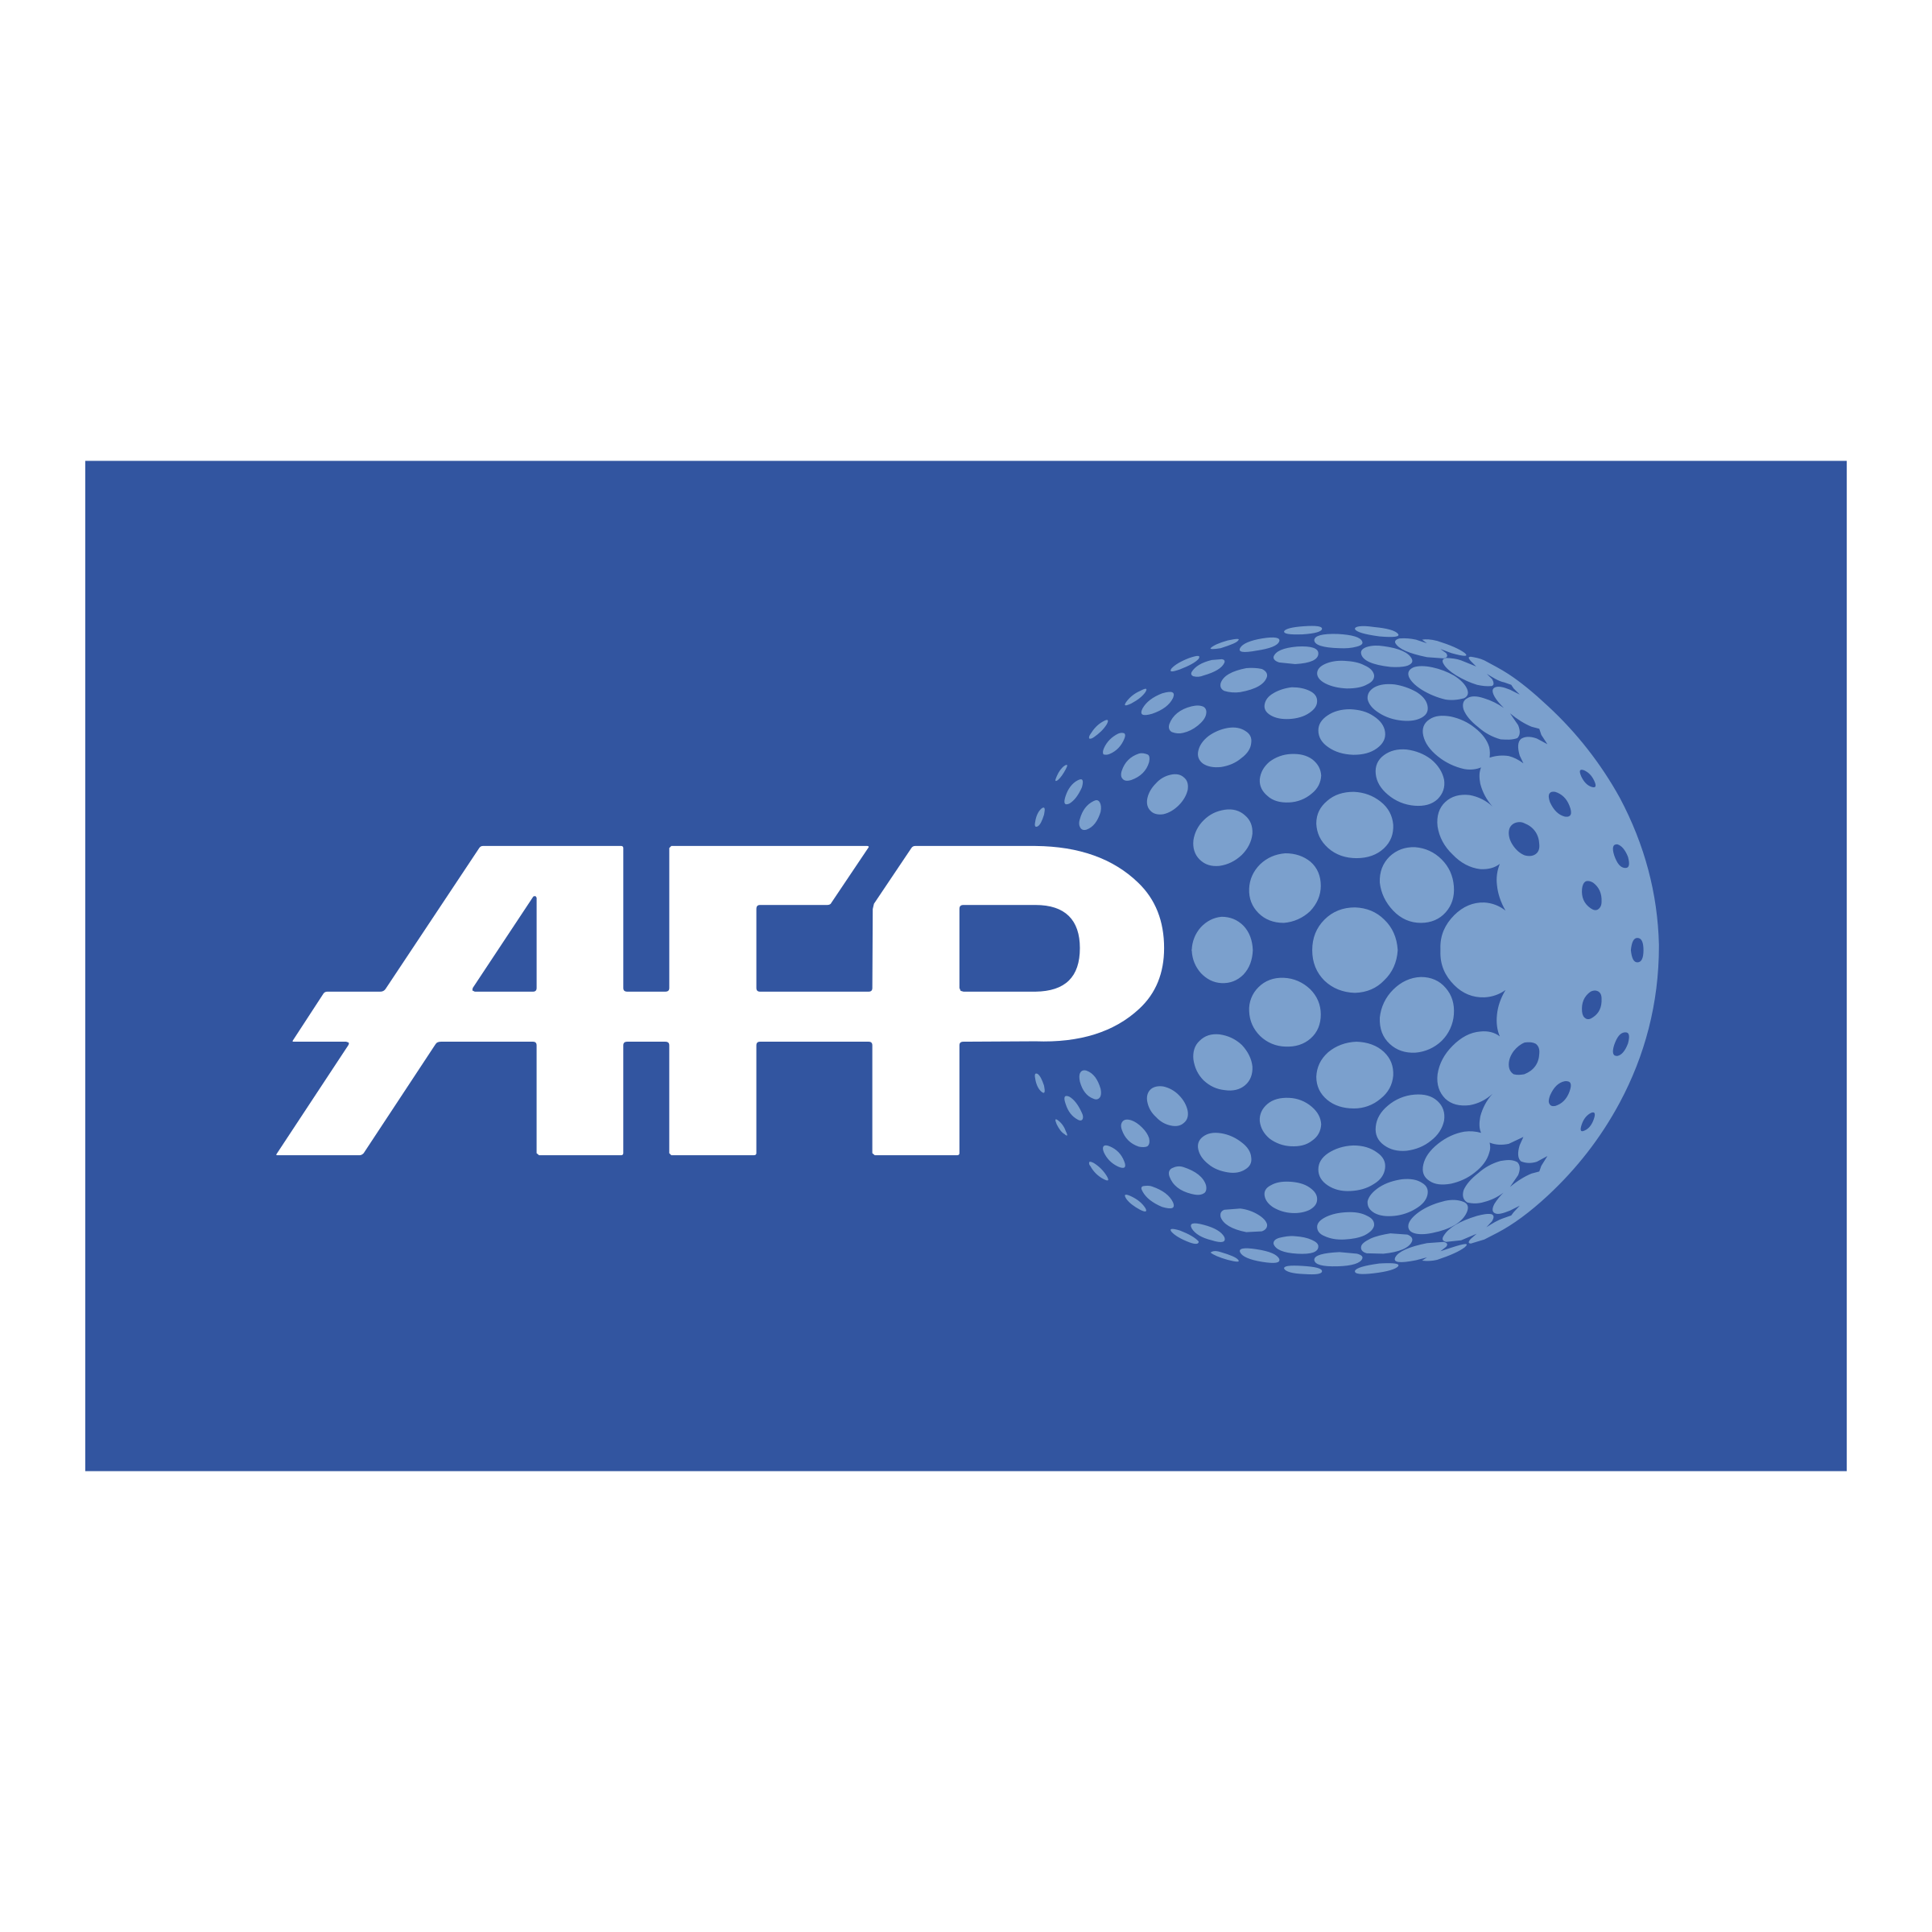 AFP Logo PNG Transparent & SVG Vector.